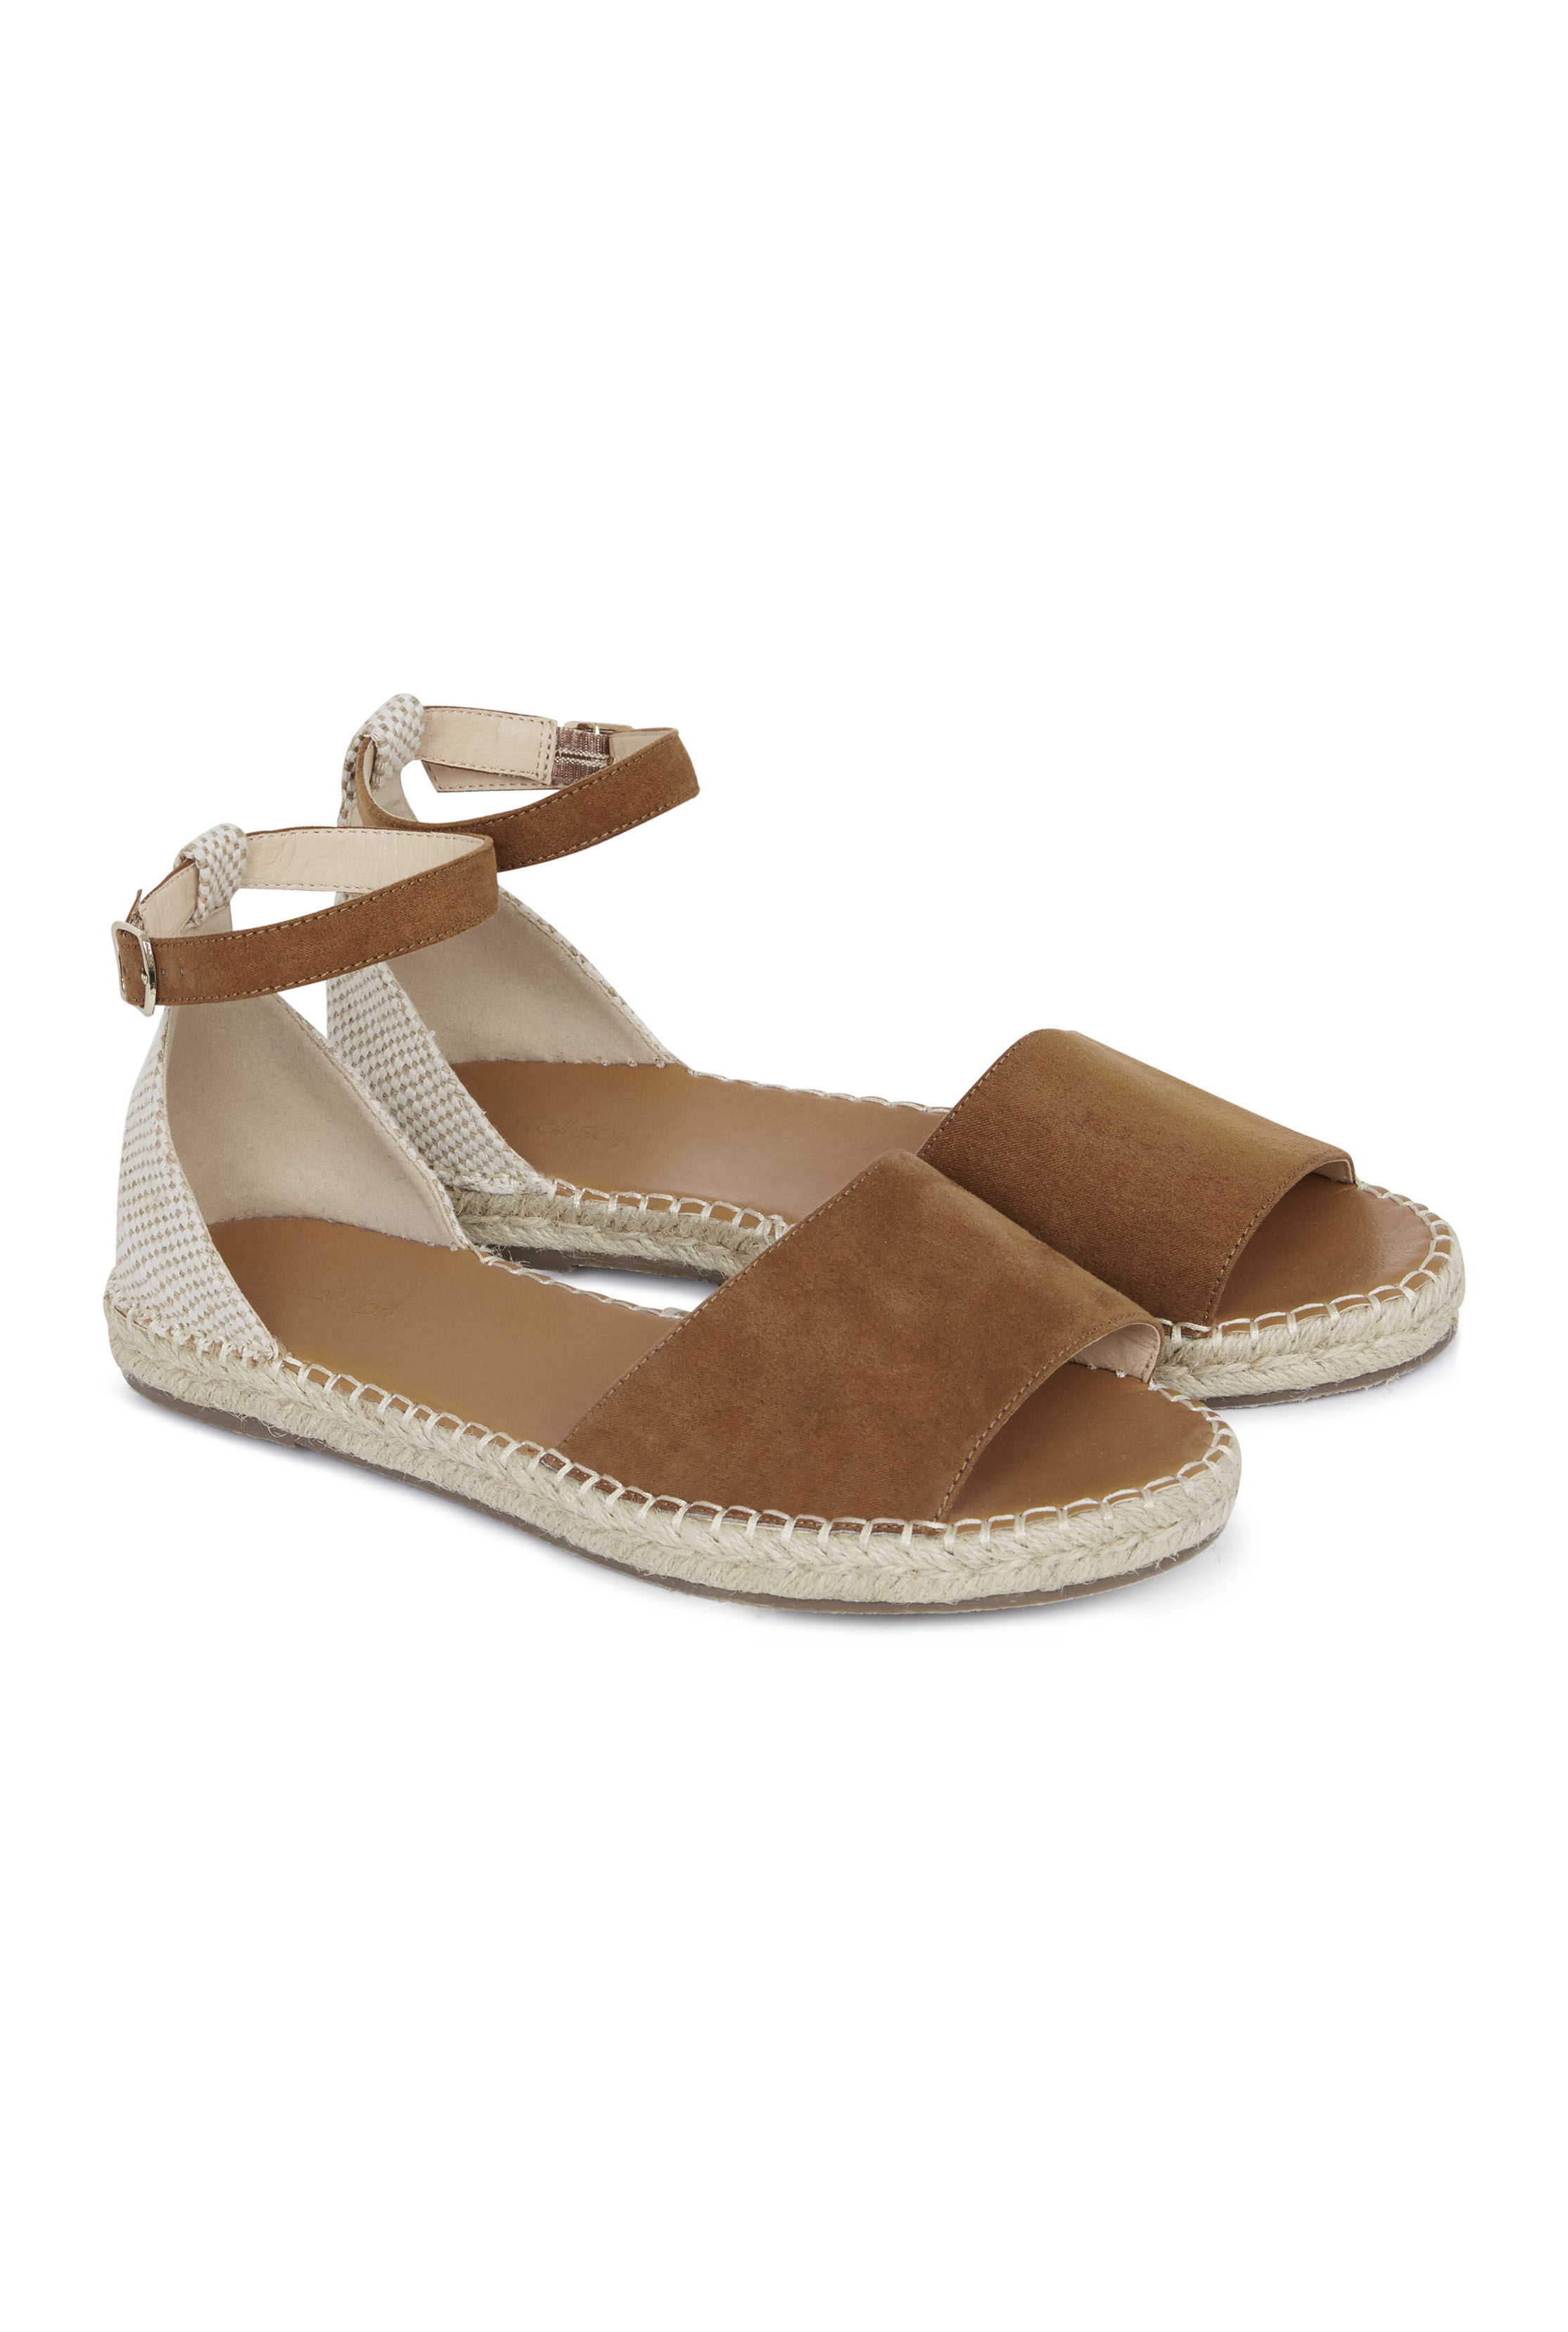 LTS Lolly Two Part Espadrille